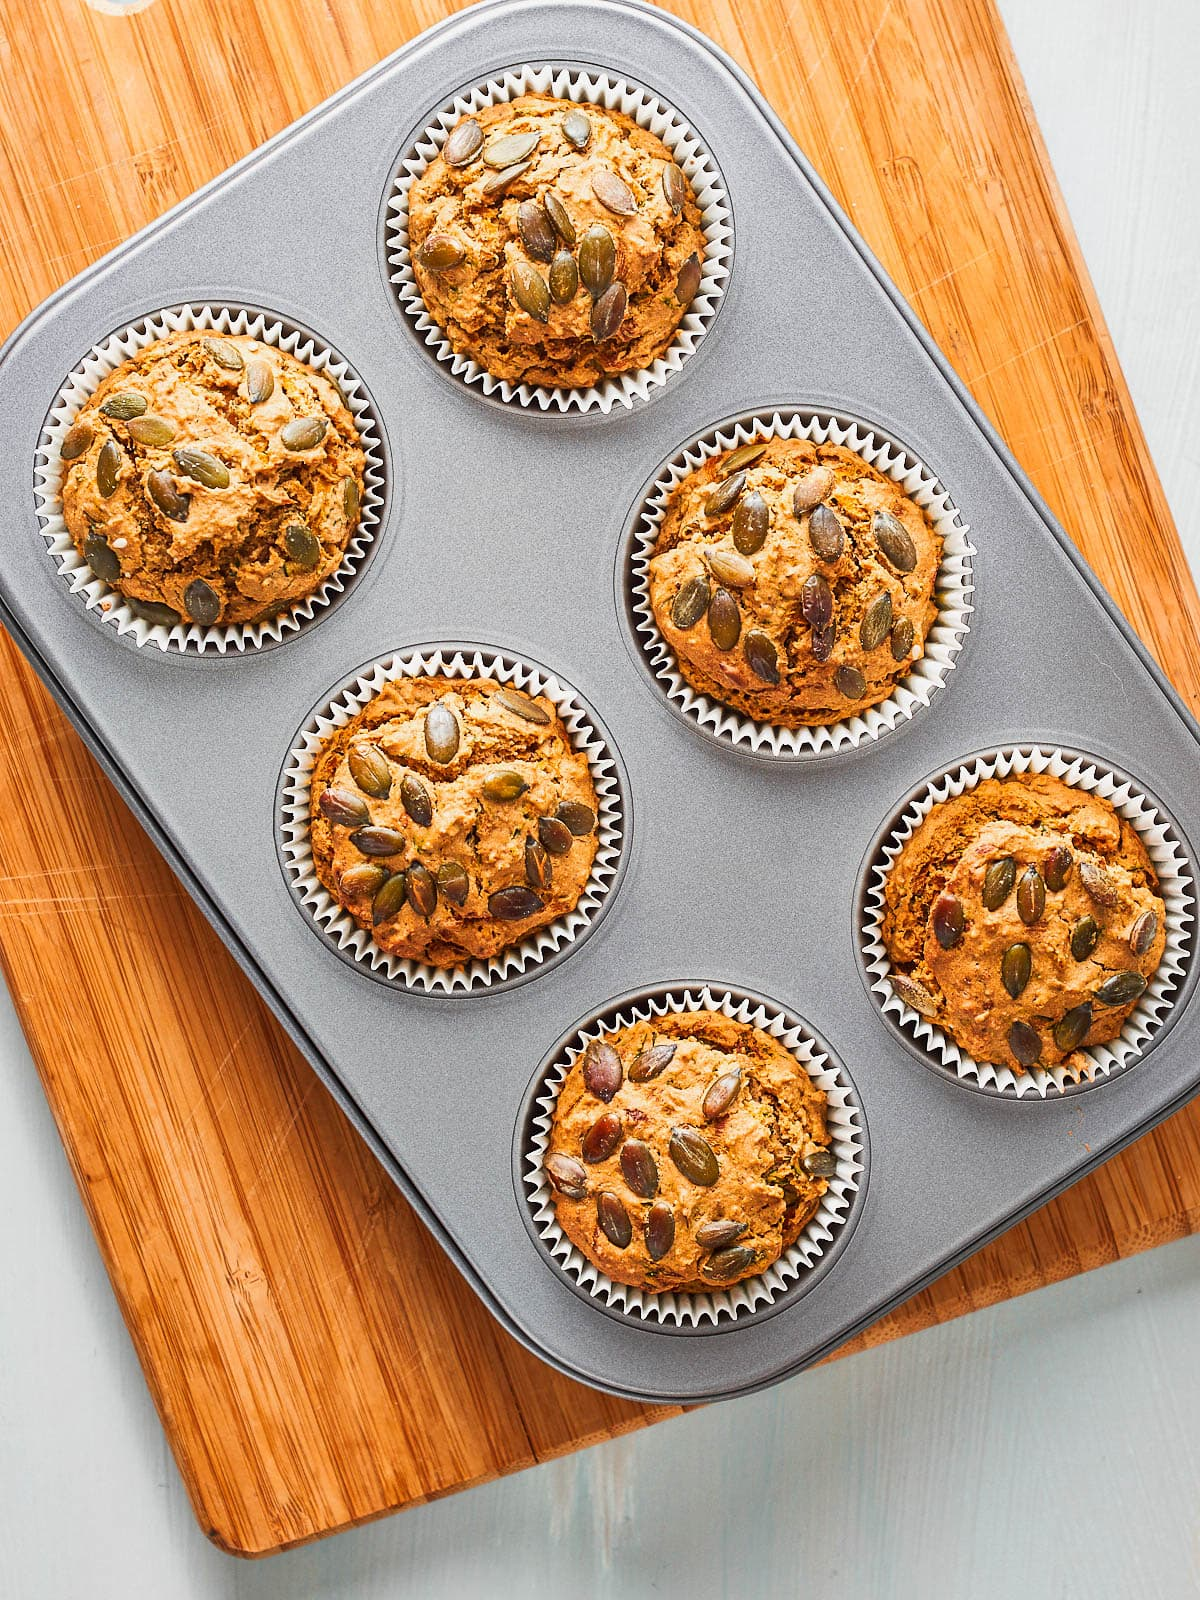 The baked muffins out of the oven